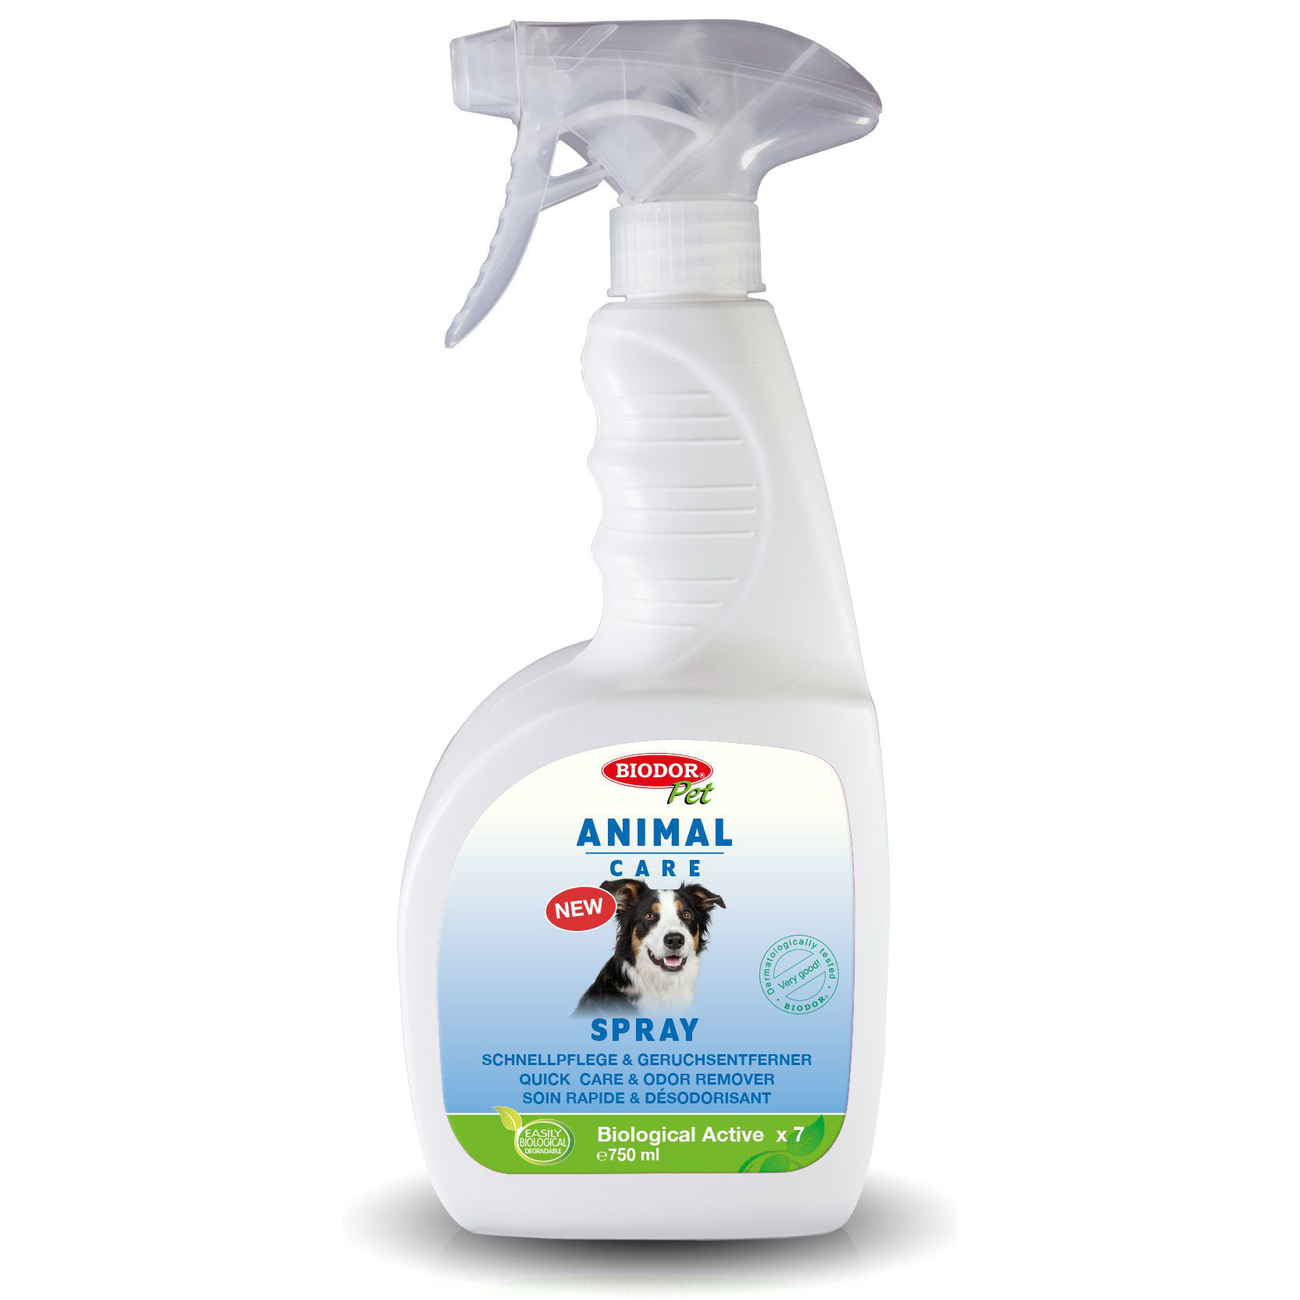 Biodor Pet Animal Care Spray